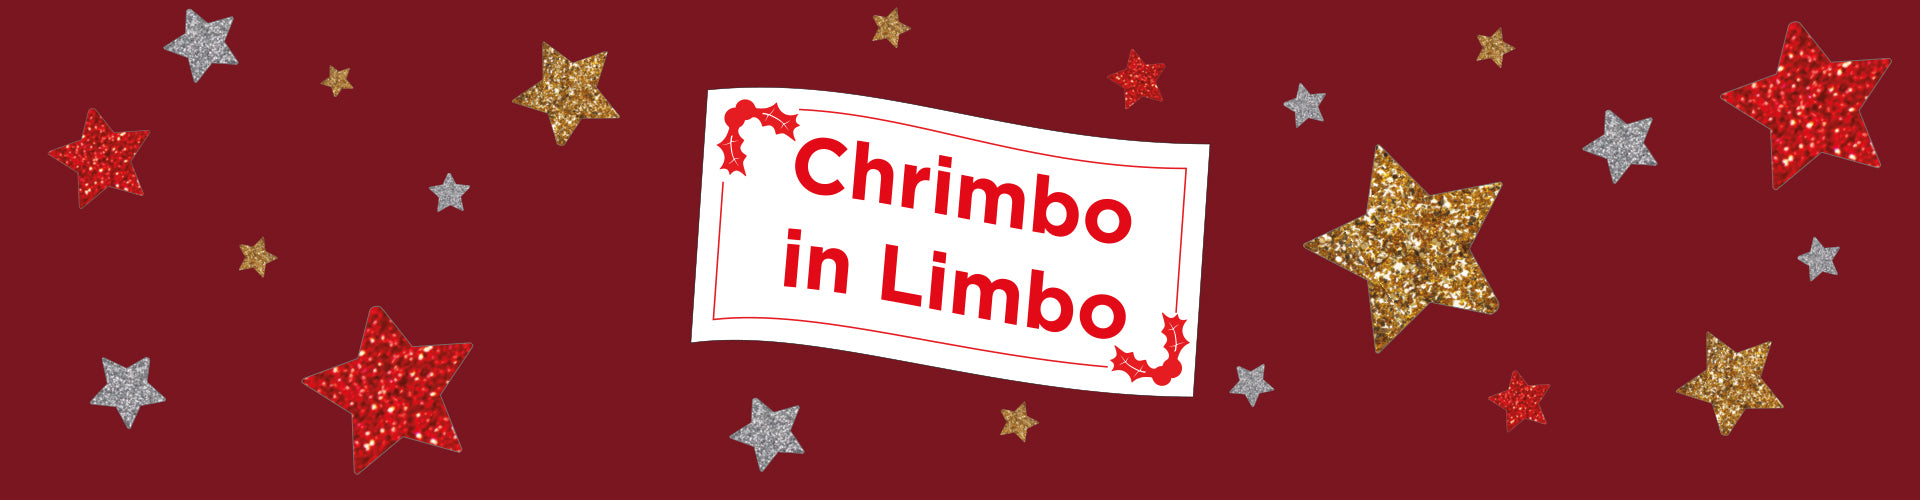 Chrimbo In Limbo